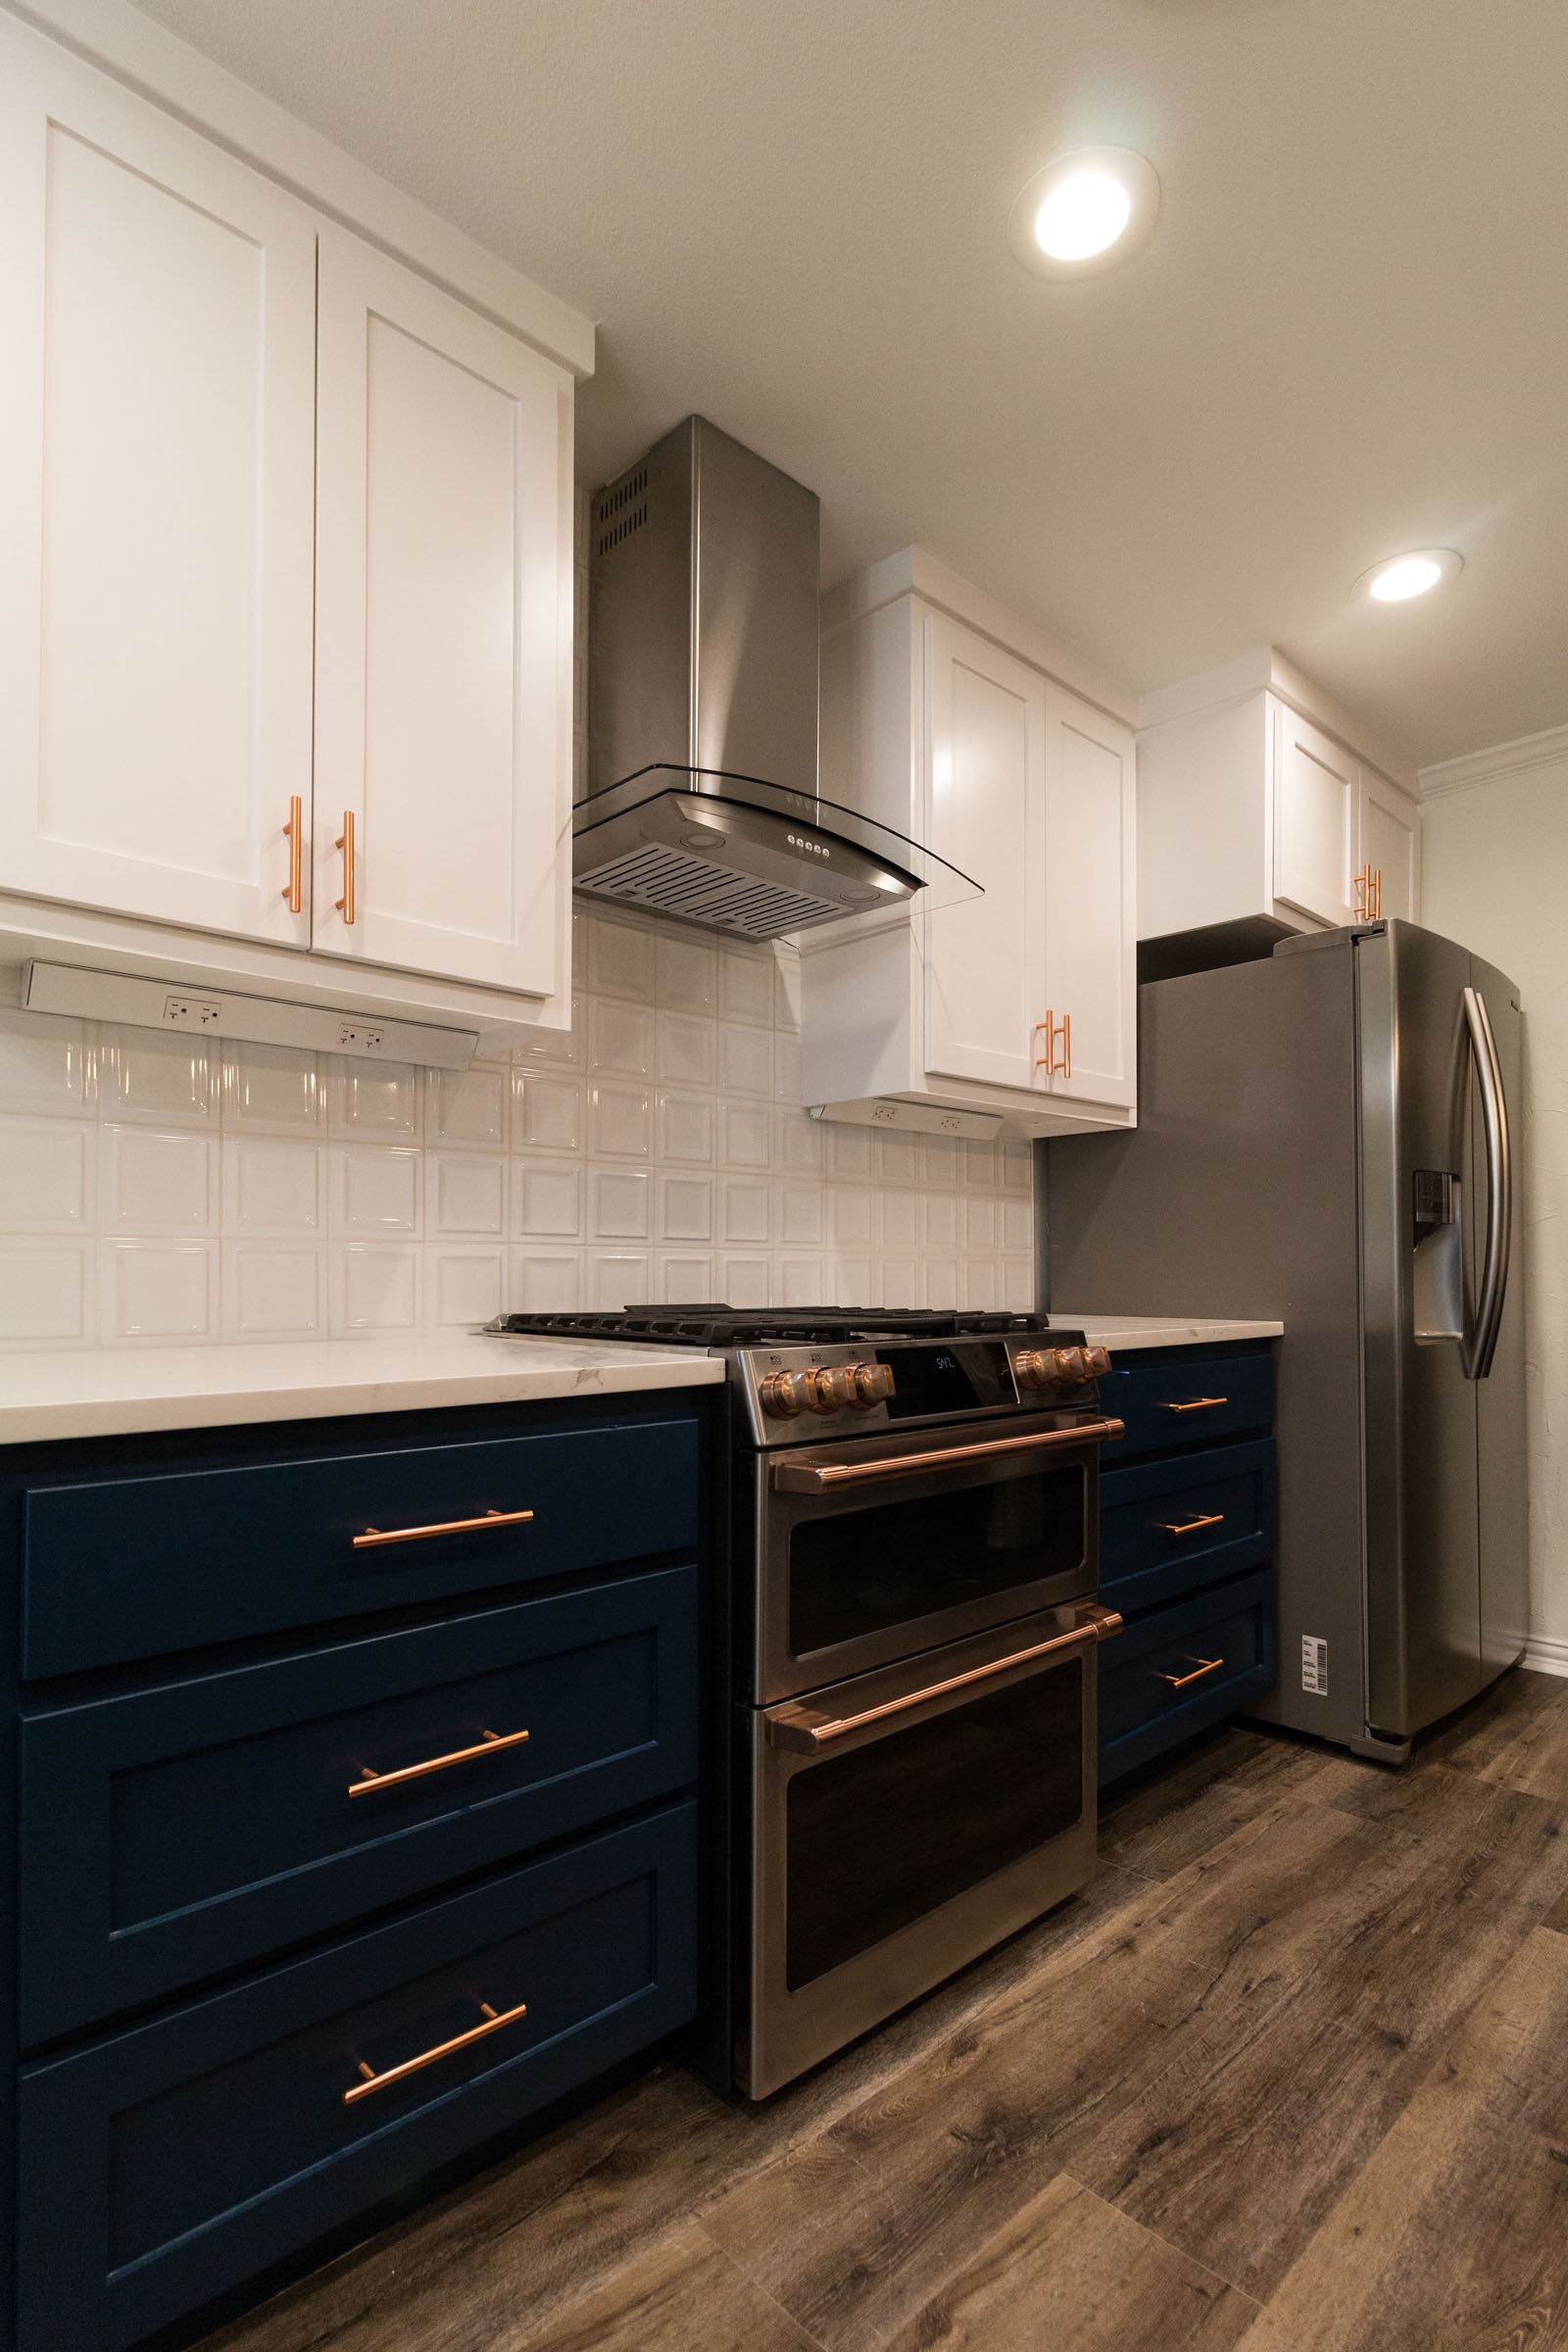 Navy cabinets, copper hardware, white uppers, square backsplash, vent hood, and hardwood floors